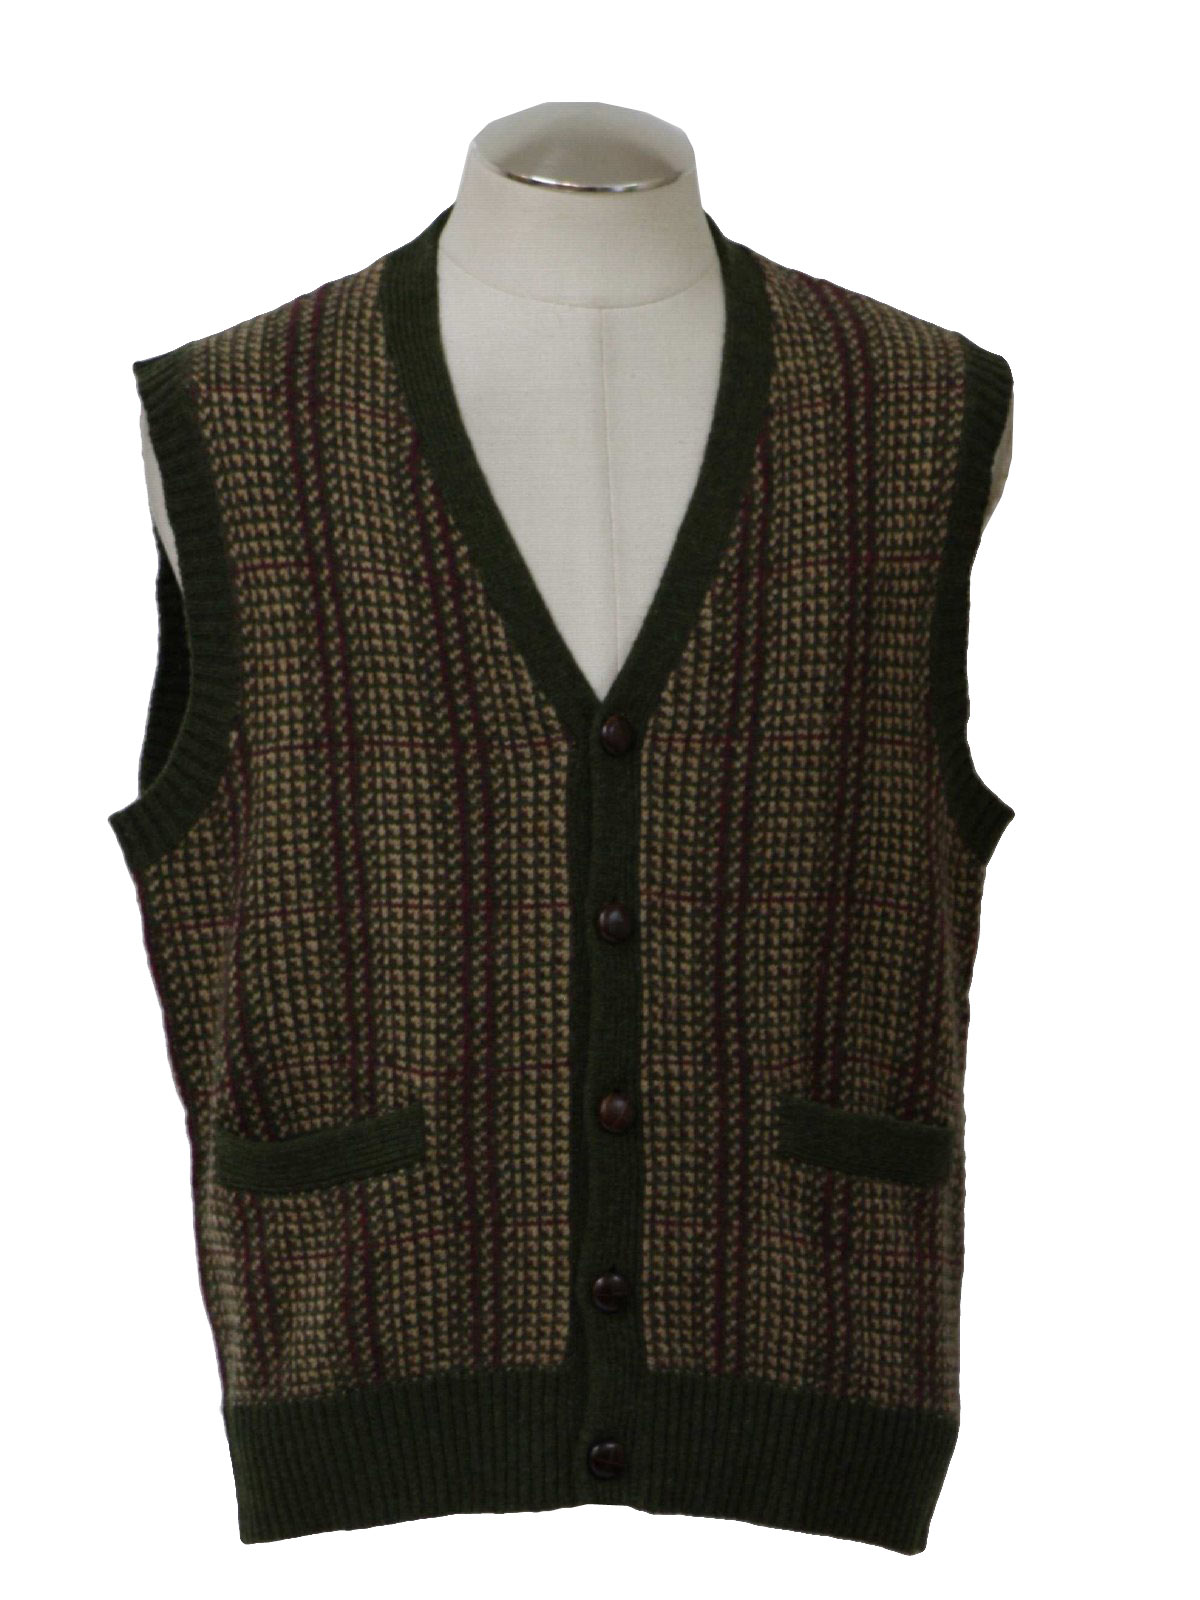 Button Sweater Vests For Men - Gray Cardigan Sweater